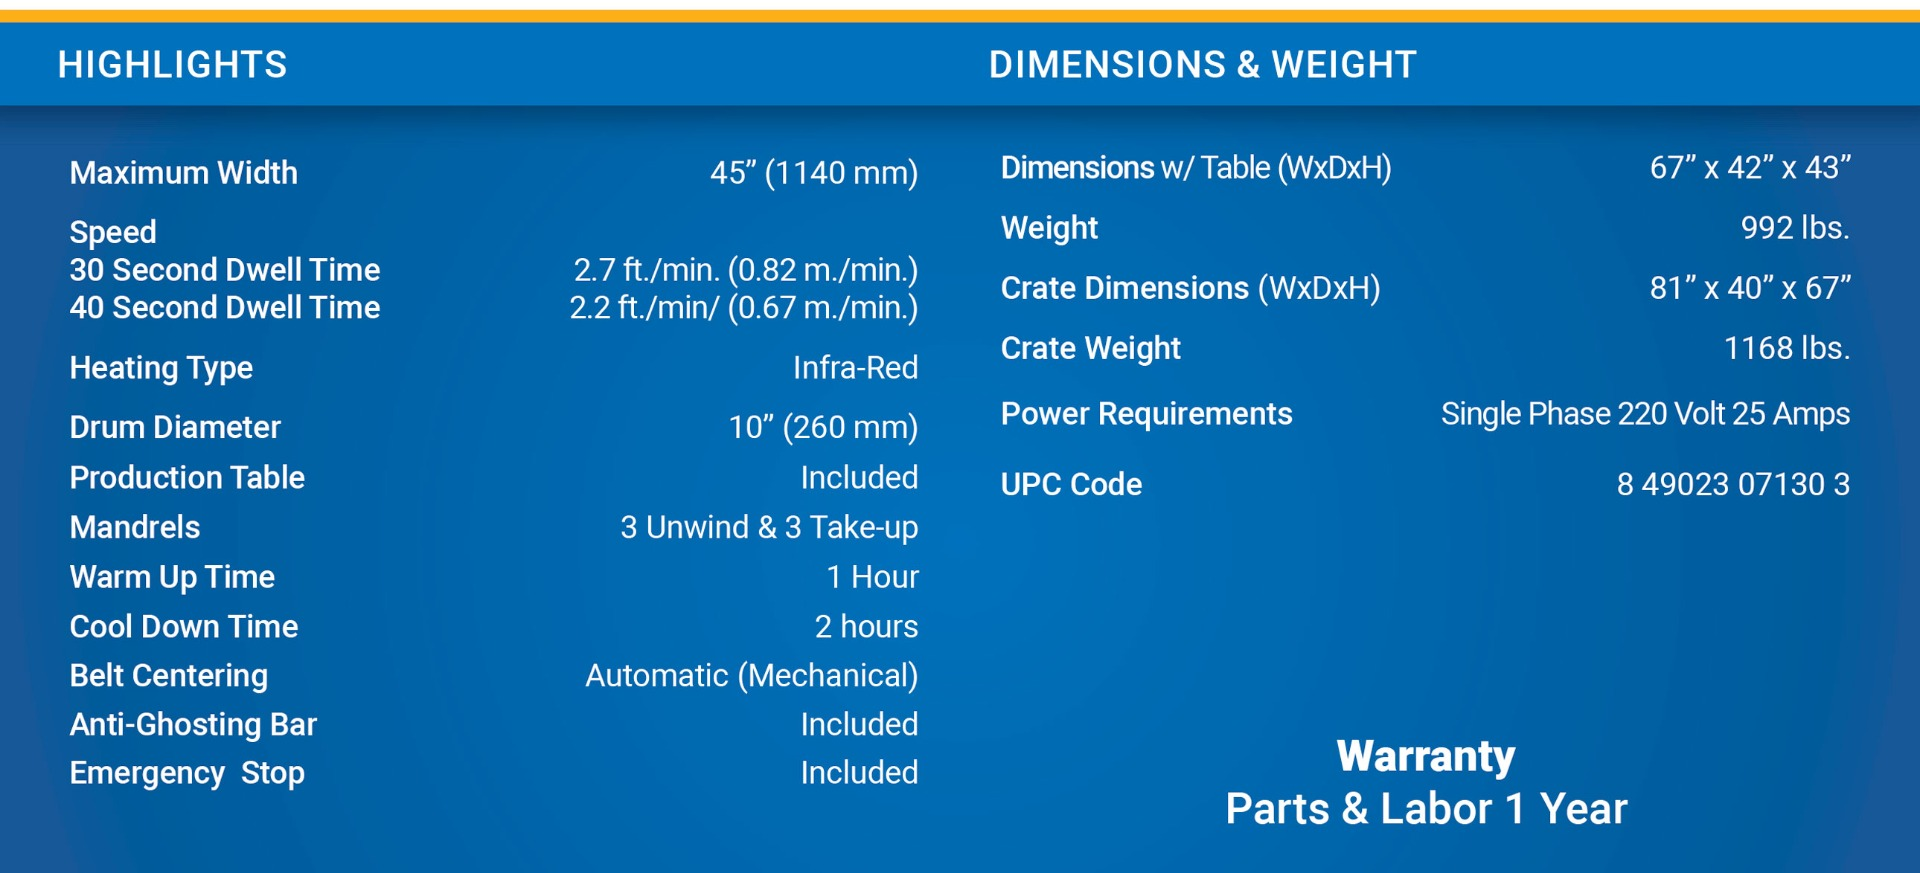 royal sovereign lx-130 calender heat transfer press specs with dimensions and weight speed drum diameter of 10